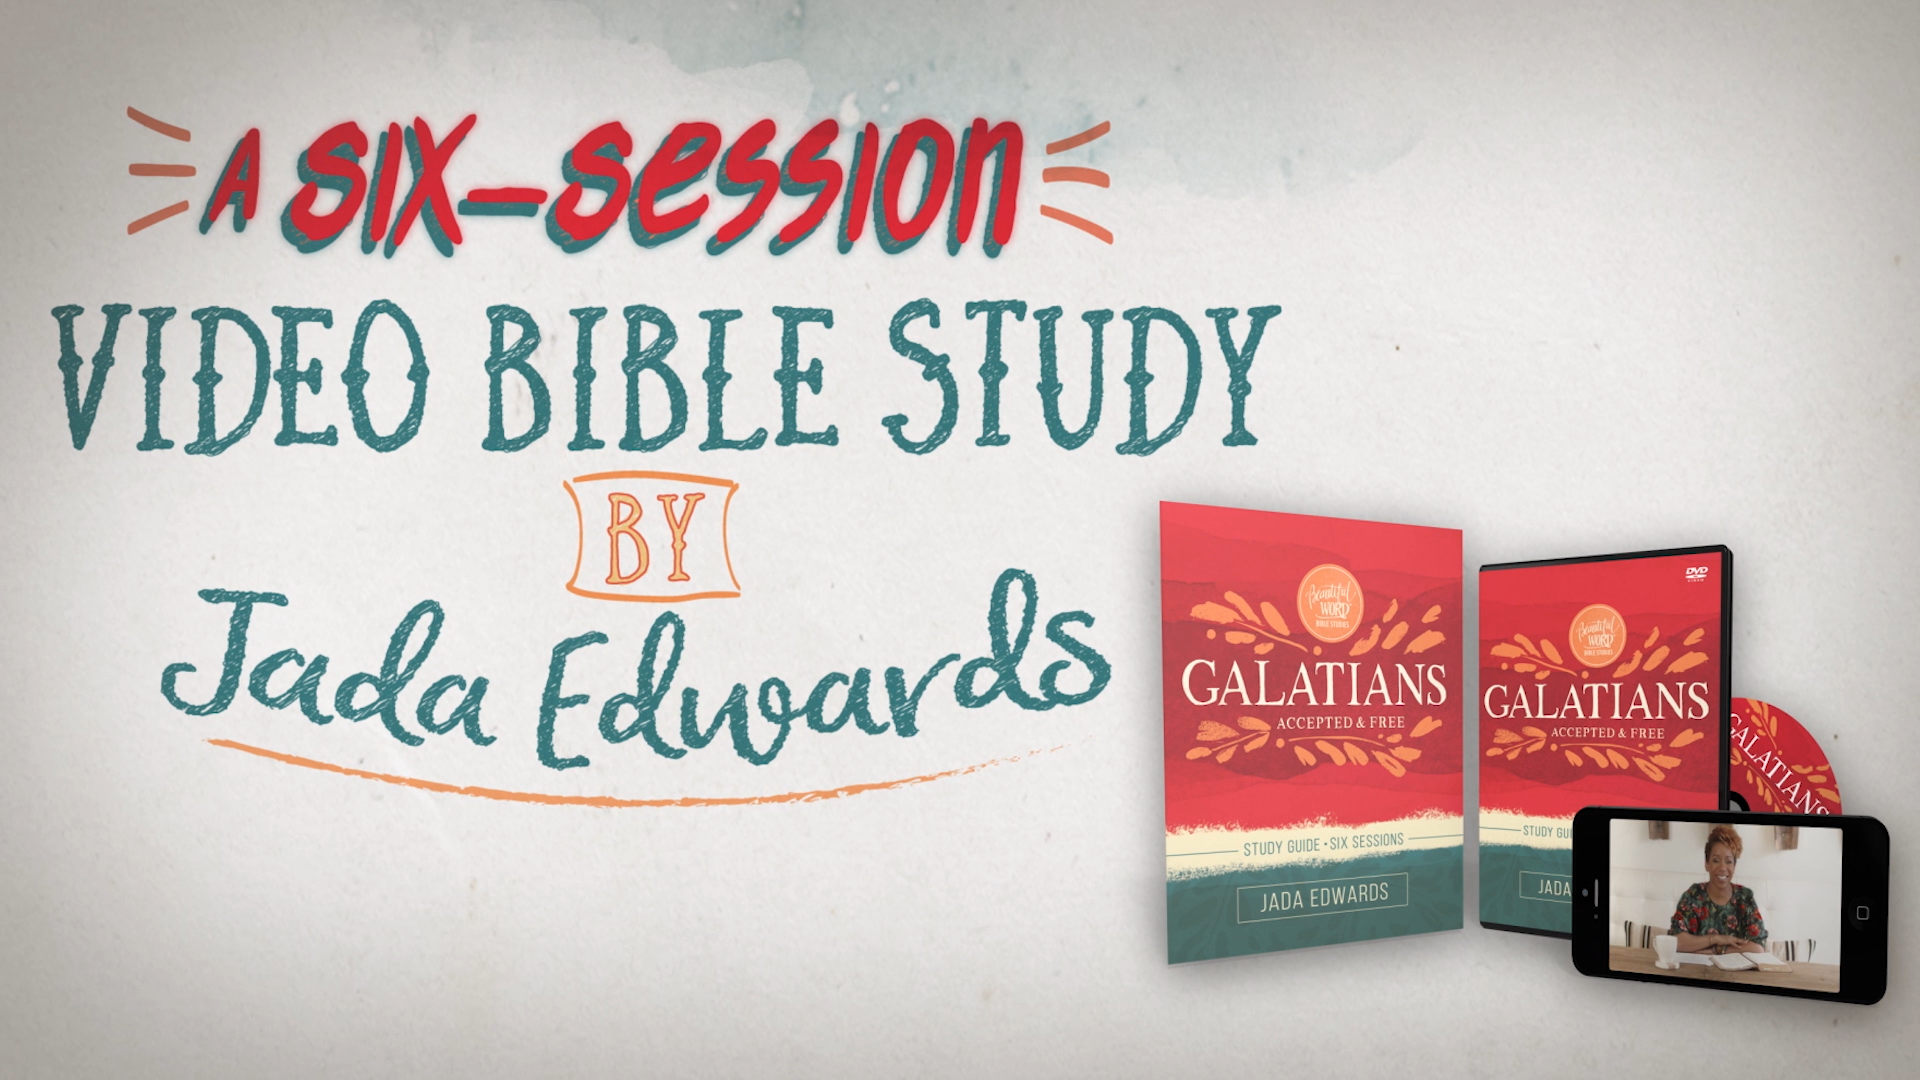 Galatians: Accepted and Free | Jada Edwards